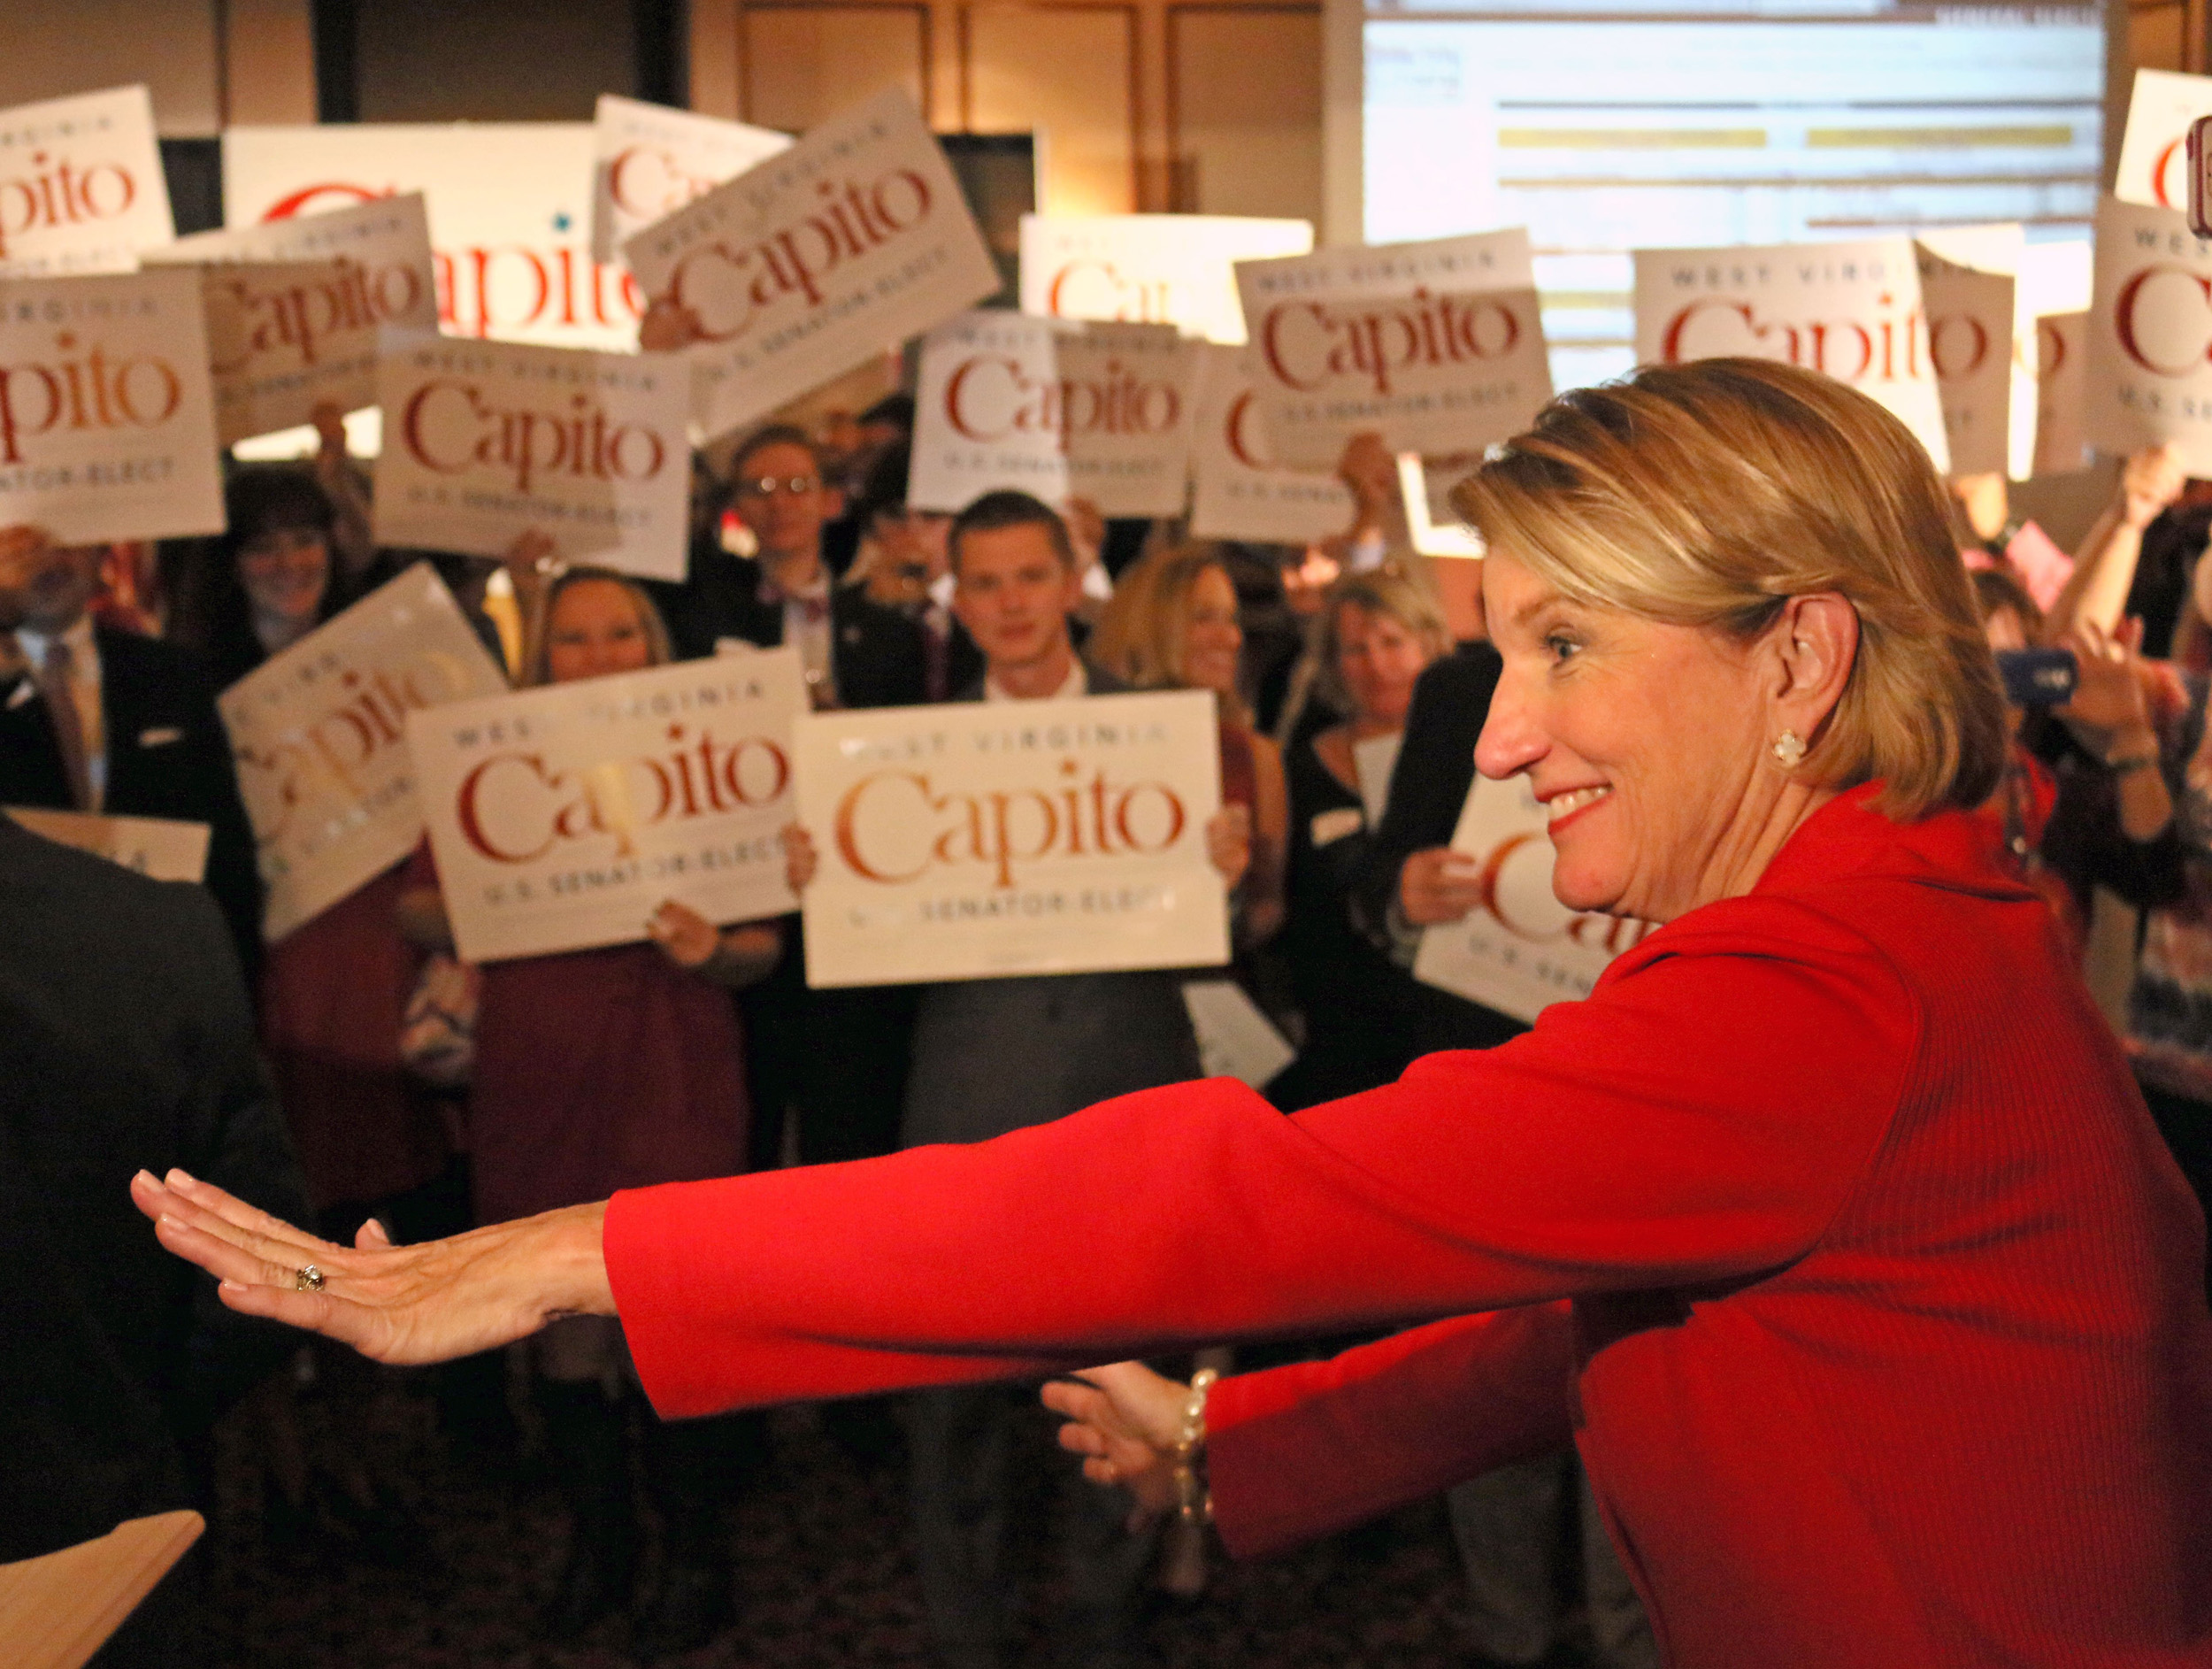 <b>Shelley Moore Capito</b> The daughter of former West Virginia Gov. Arch Alfred Moore, Jr., Capito has served as a U.S. Representative for West Virginia's 2nd District since 2001.